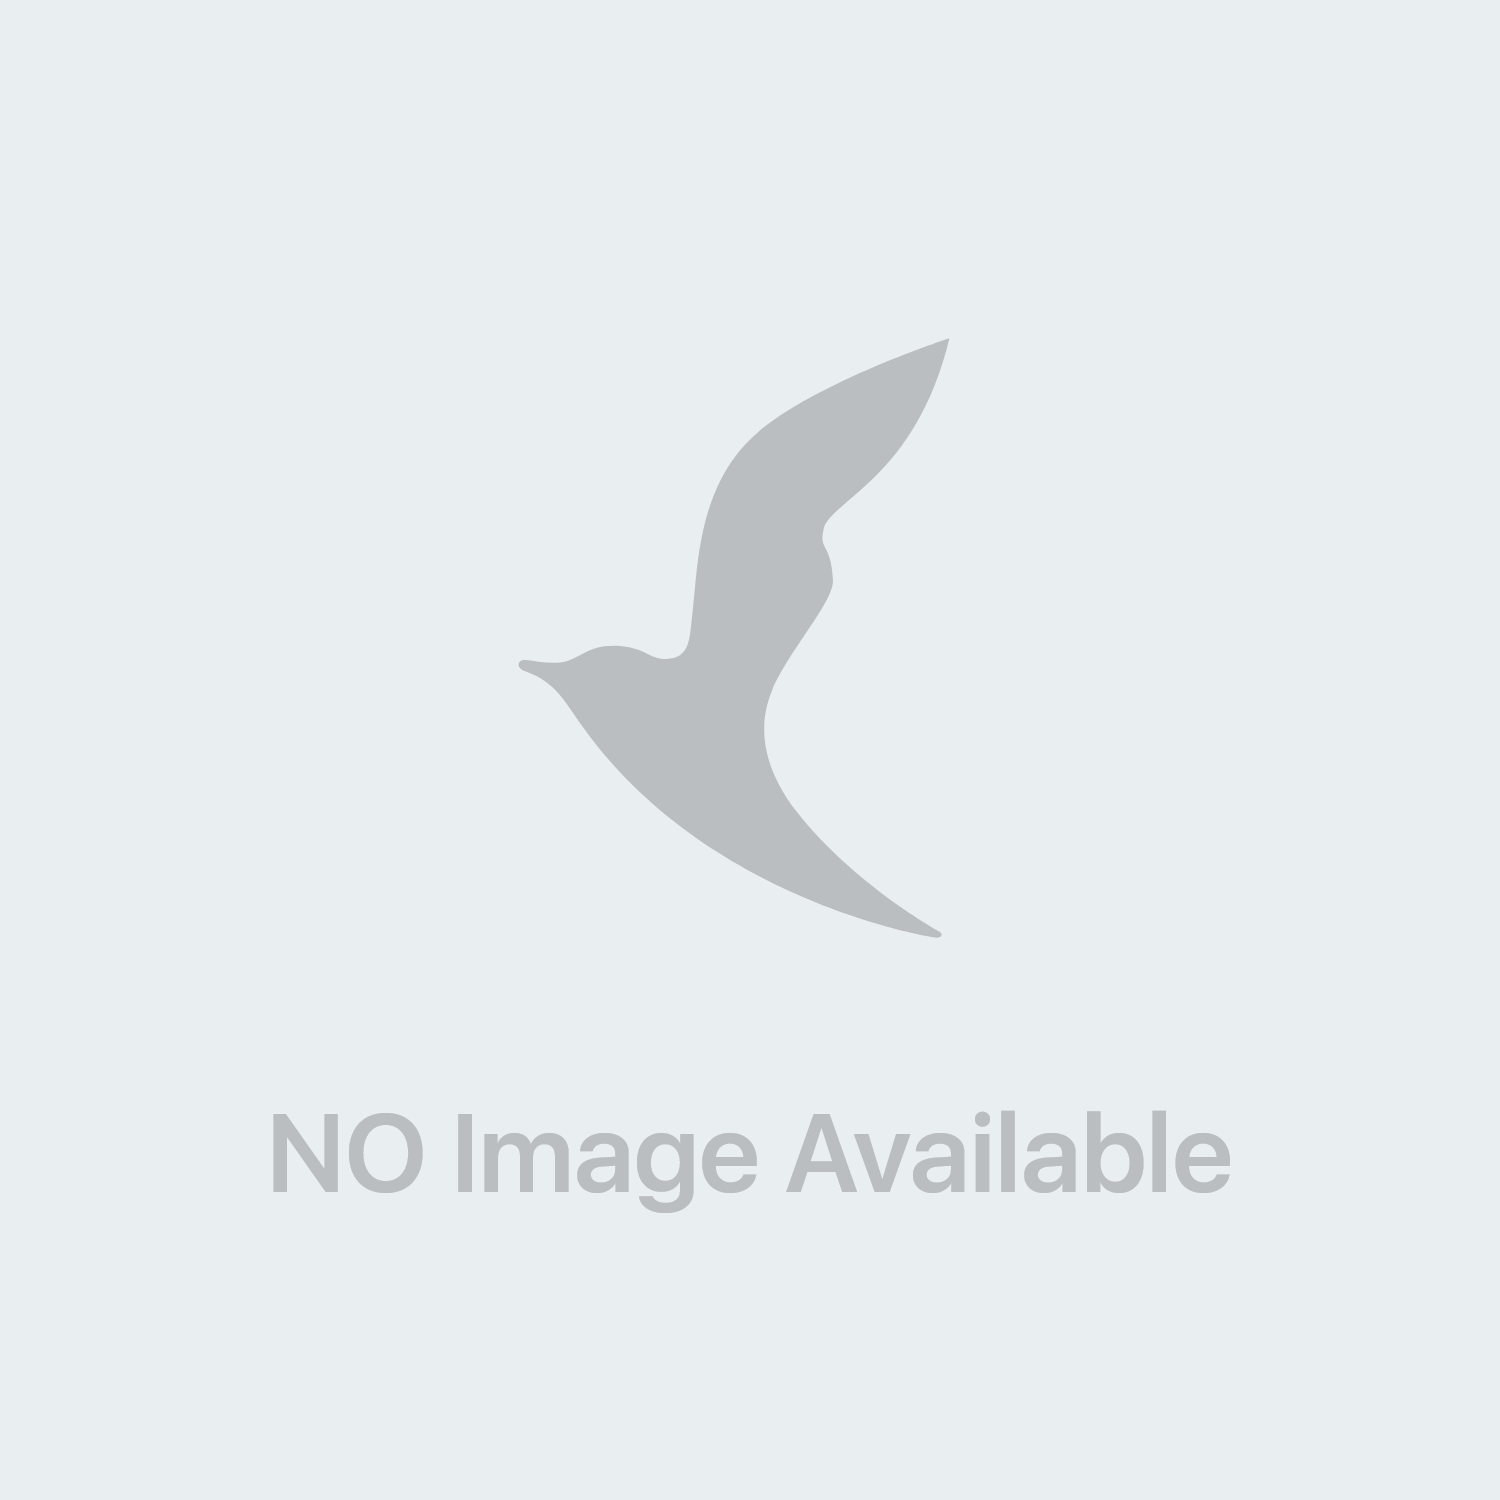 RoC Pro-Renove Antiage Crema Fluida Uniformante 40 Ml